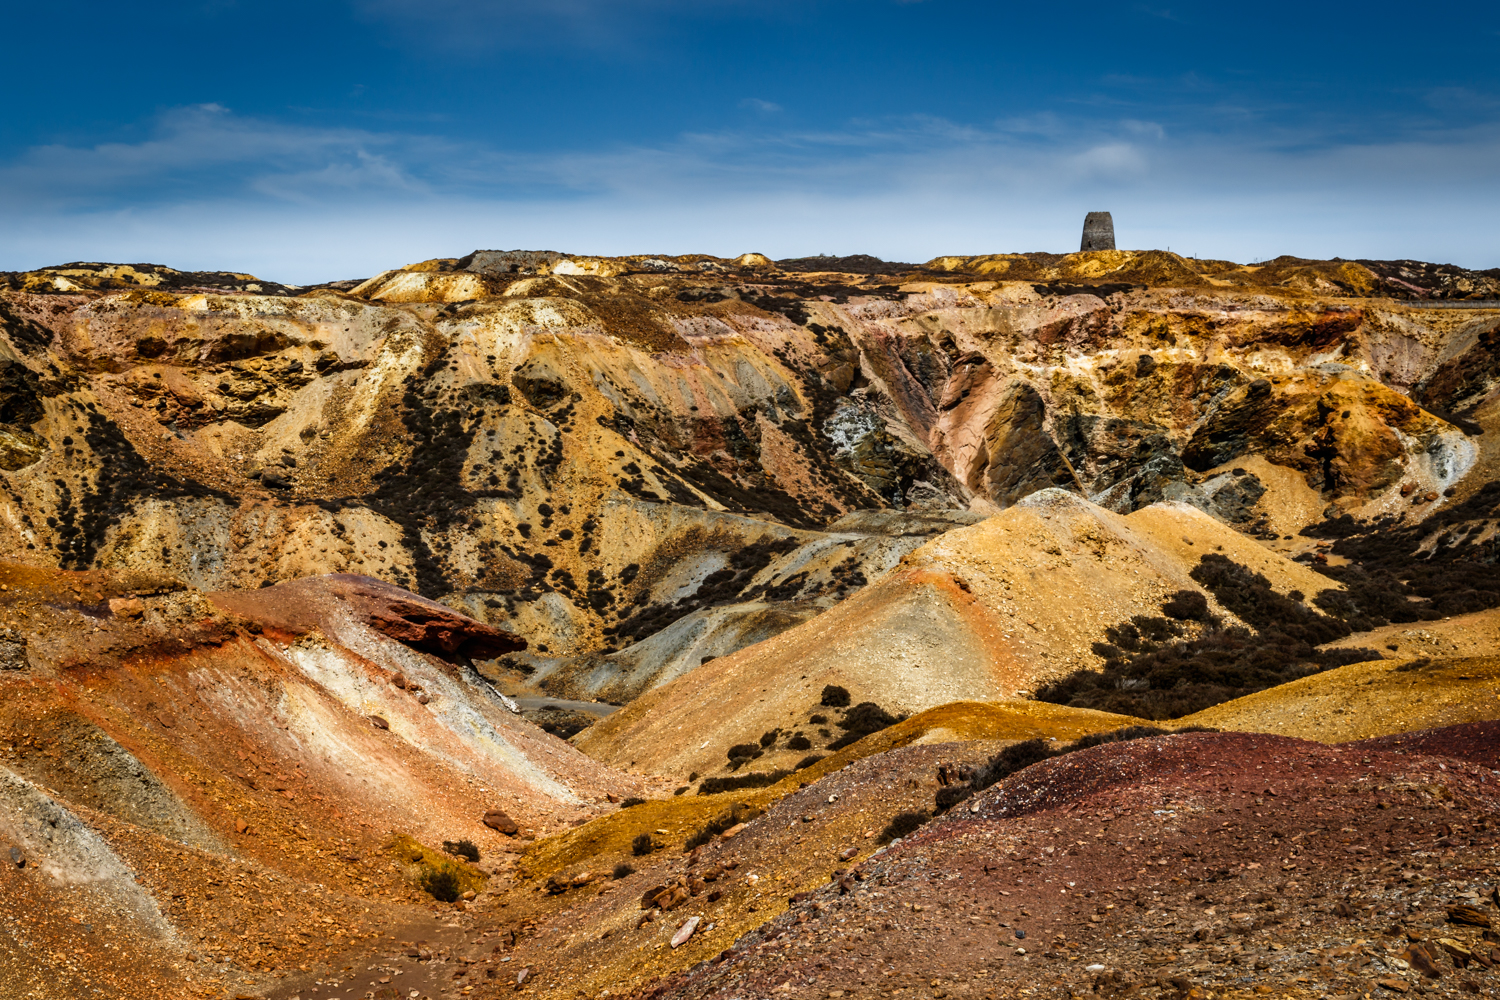 Anglesey - The Great Opencast on Parys Mountain (a.k.a. copper mountain)